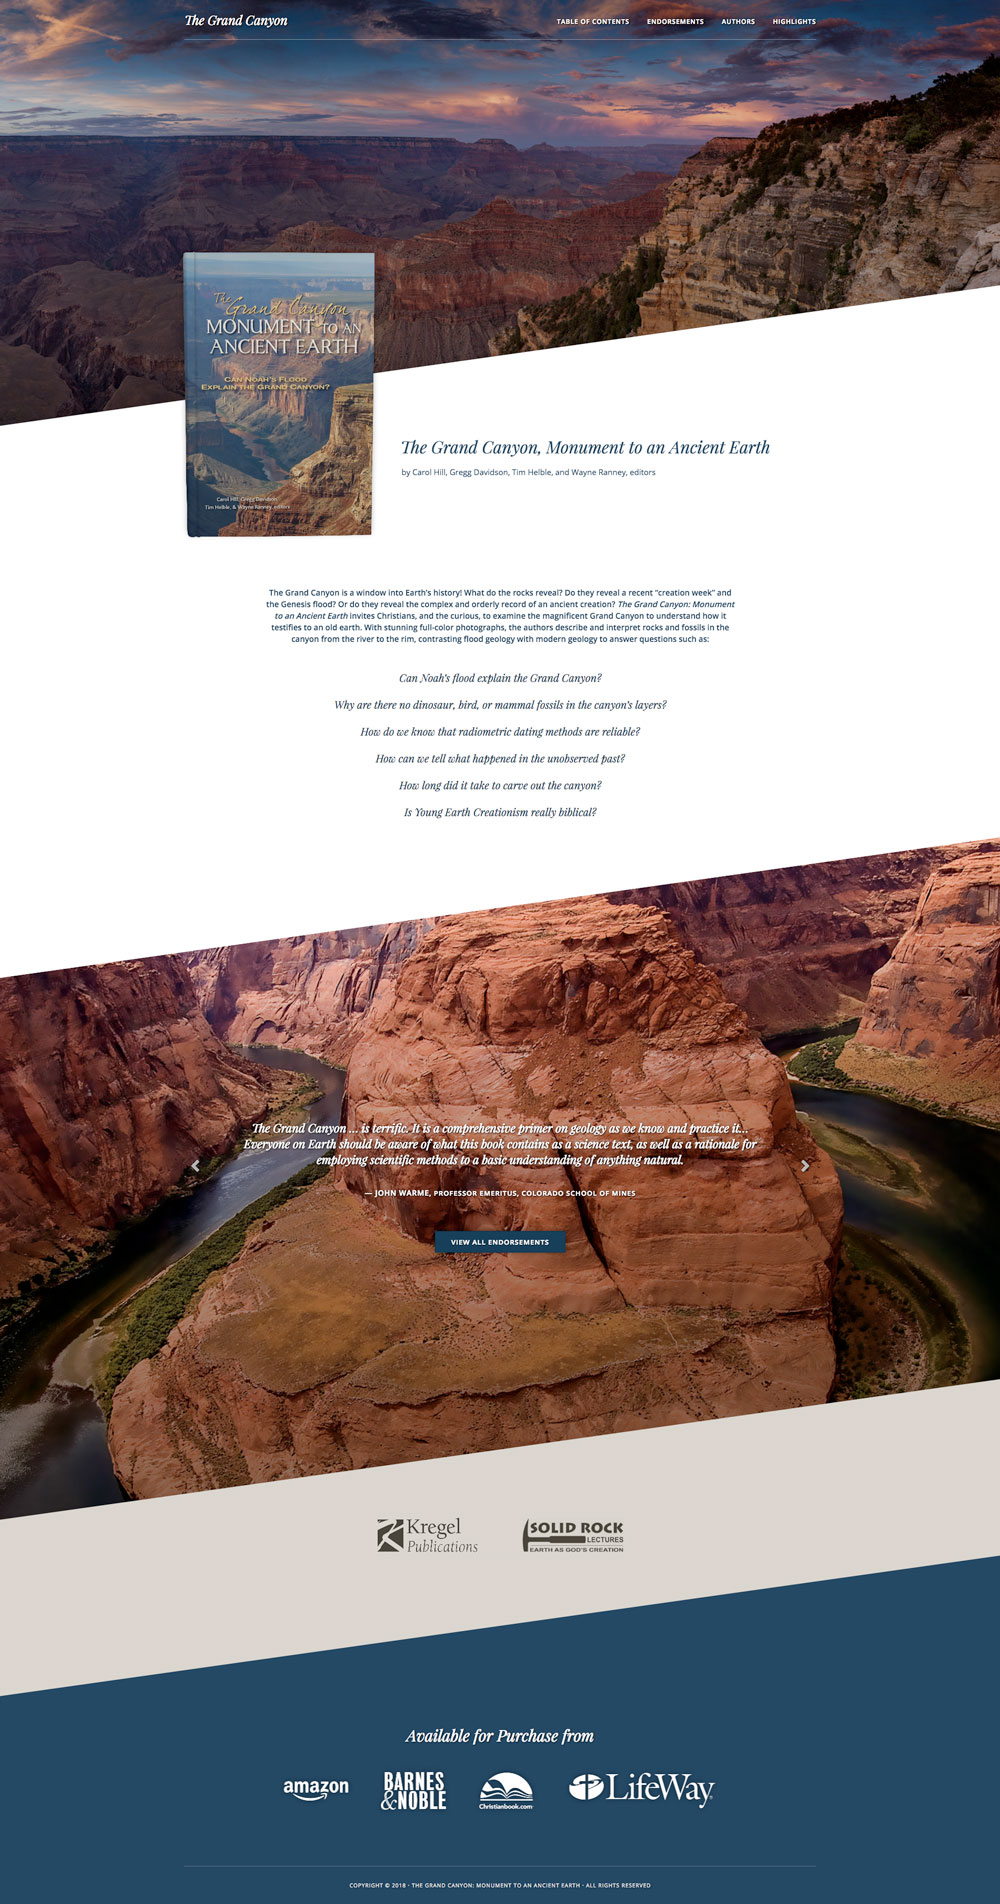 The Grand Canyon website home page